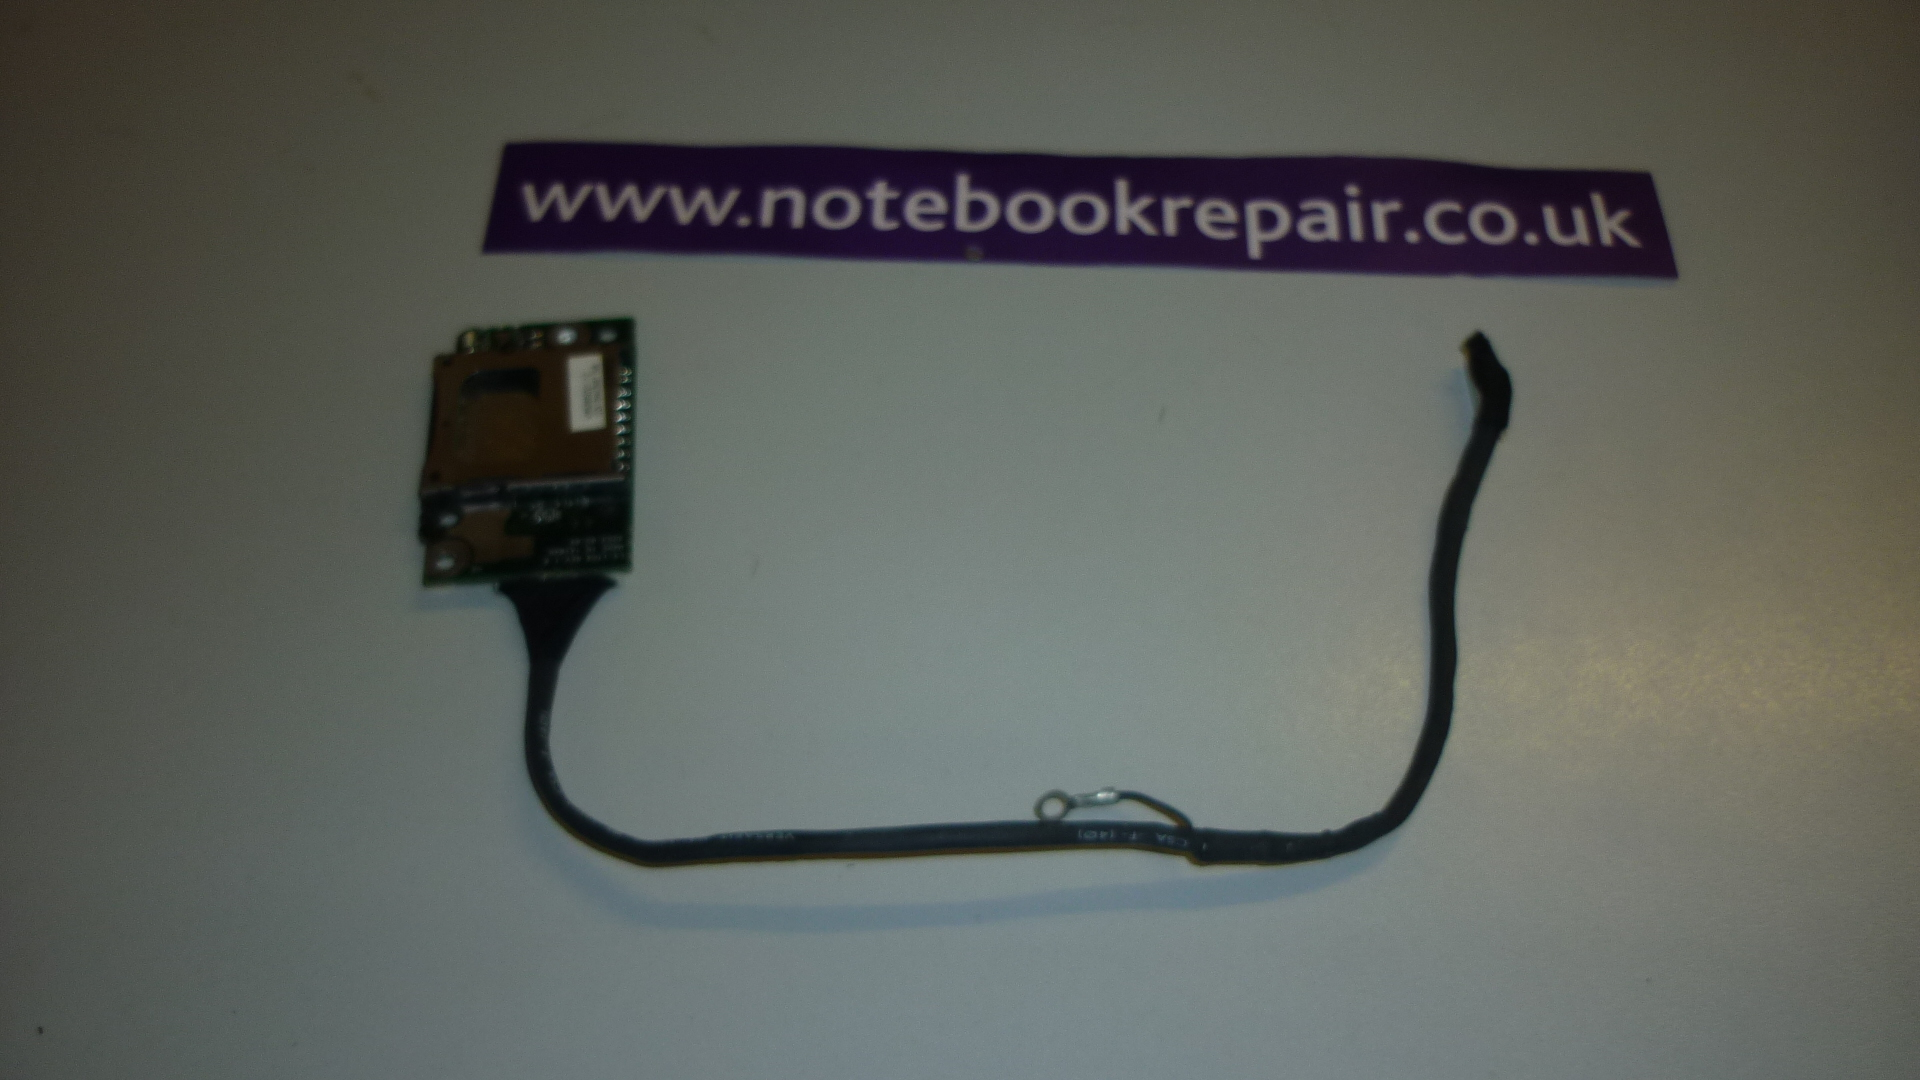 NX7000 SD CARD READER WITH CABLE SPS-336963-001